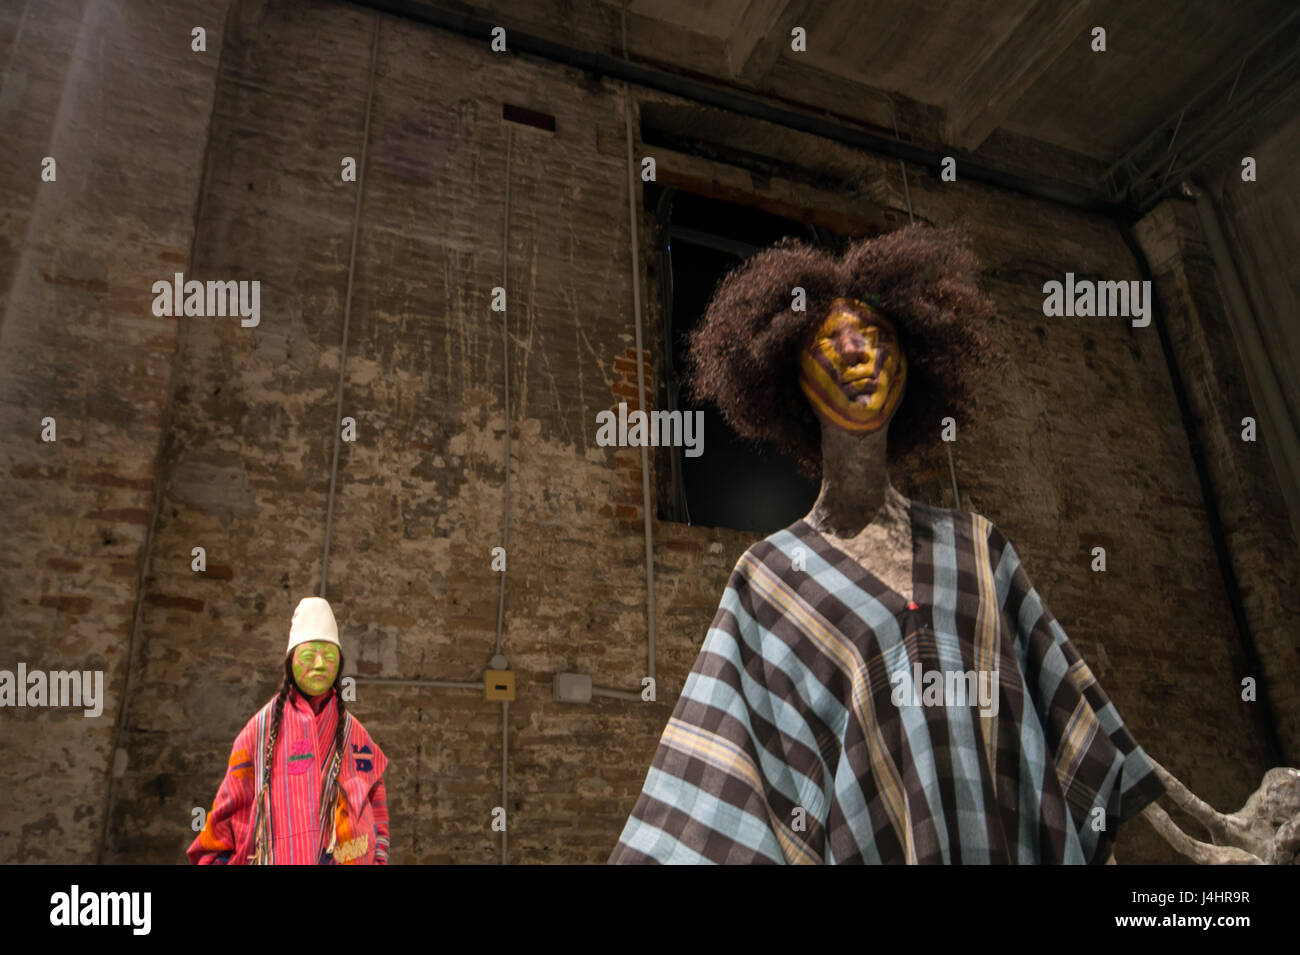 Francis Upritchard,  sculptures, 57th Venice Art Biennale 2017, core exhibition at Arsenale - Stock Image